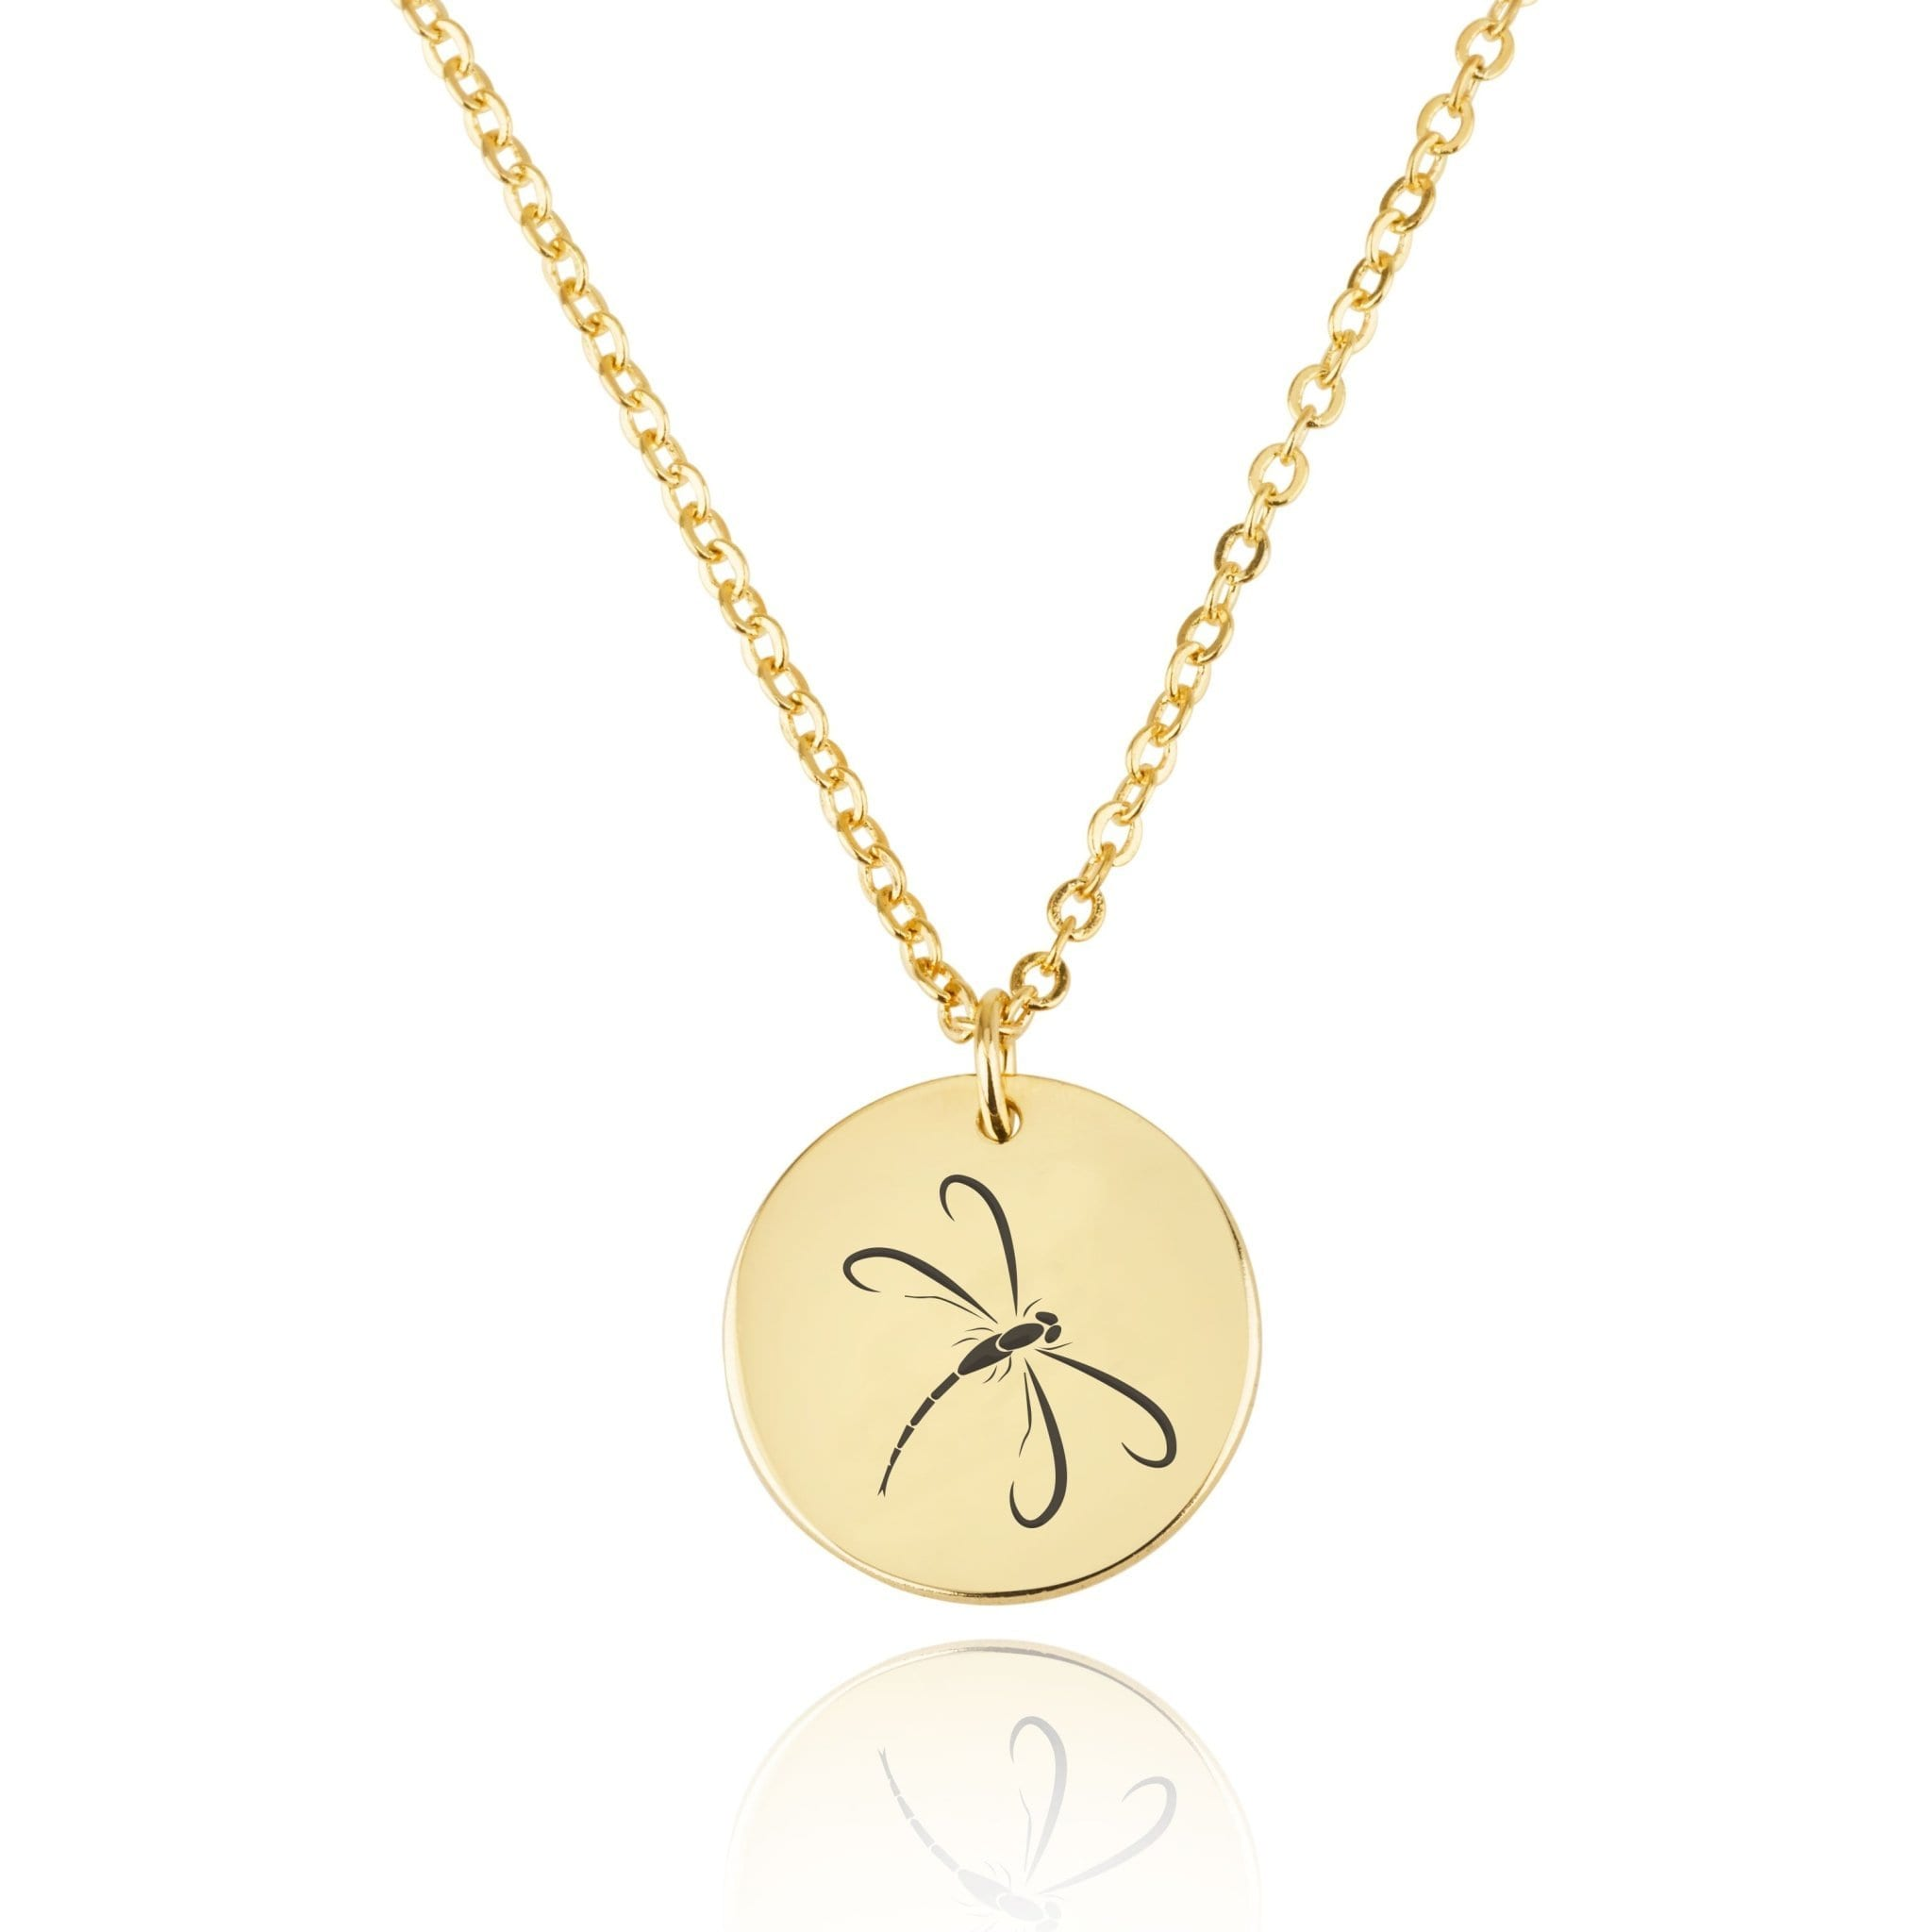 Dragonfly Engraving Disc Necklace - Beleco Jewelry